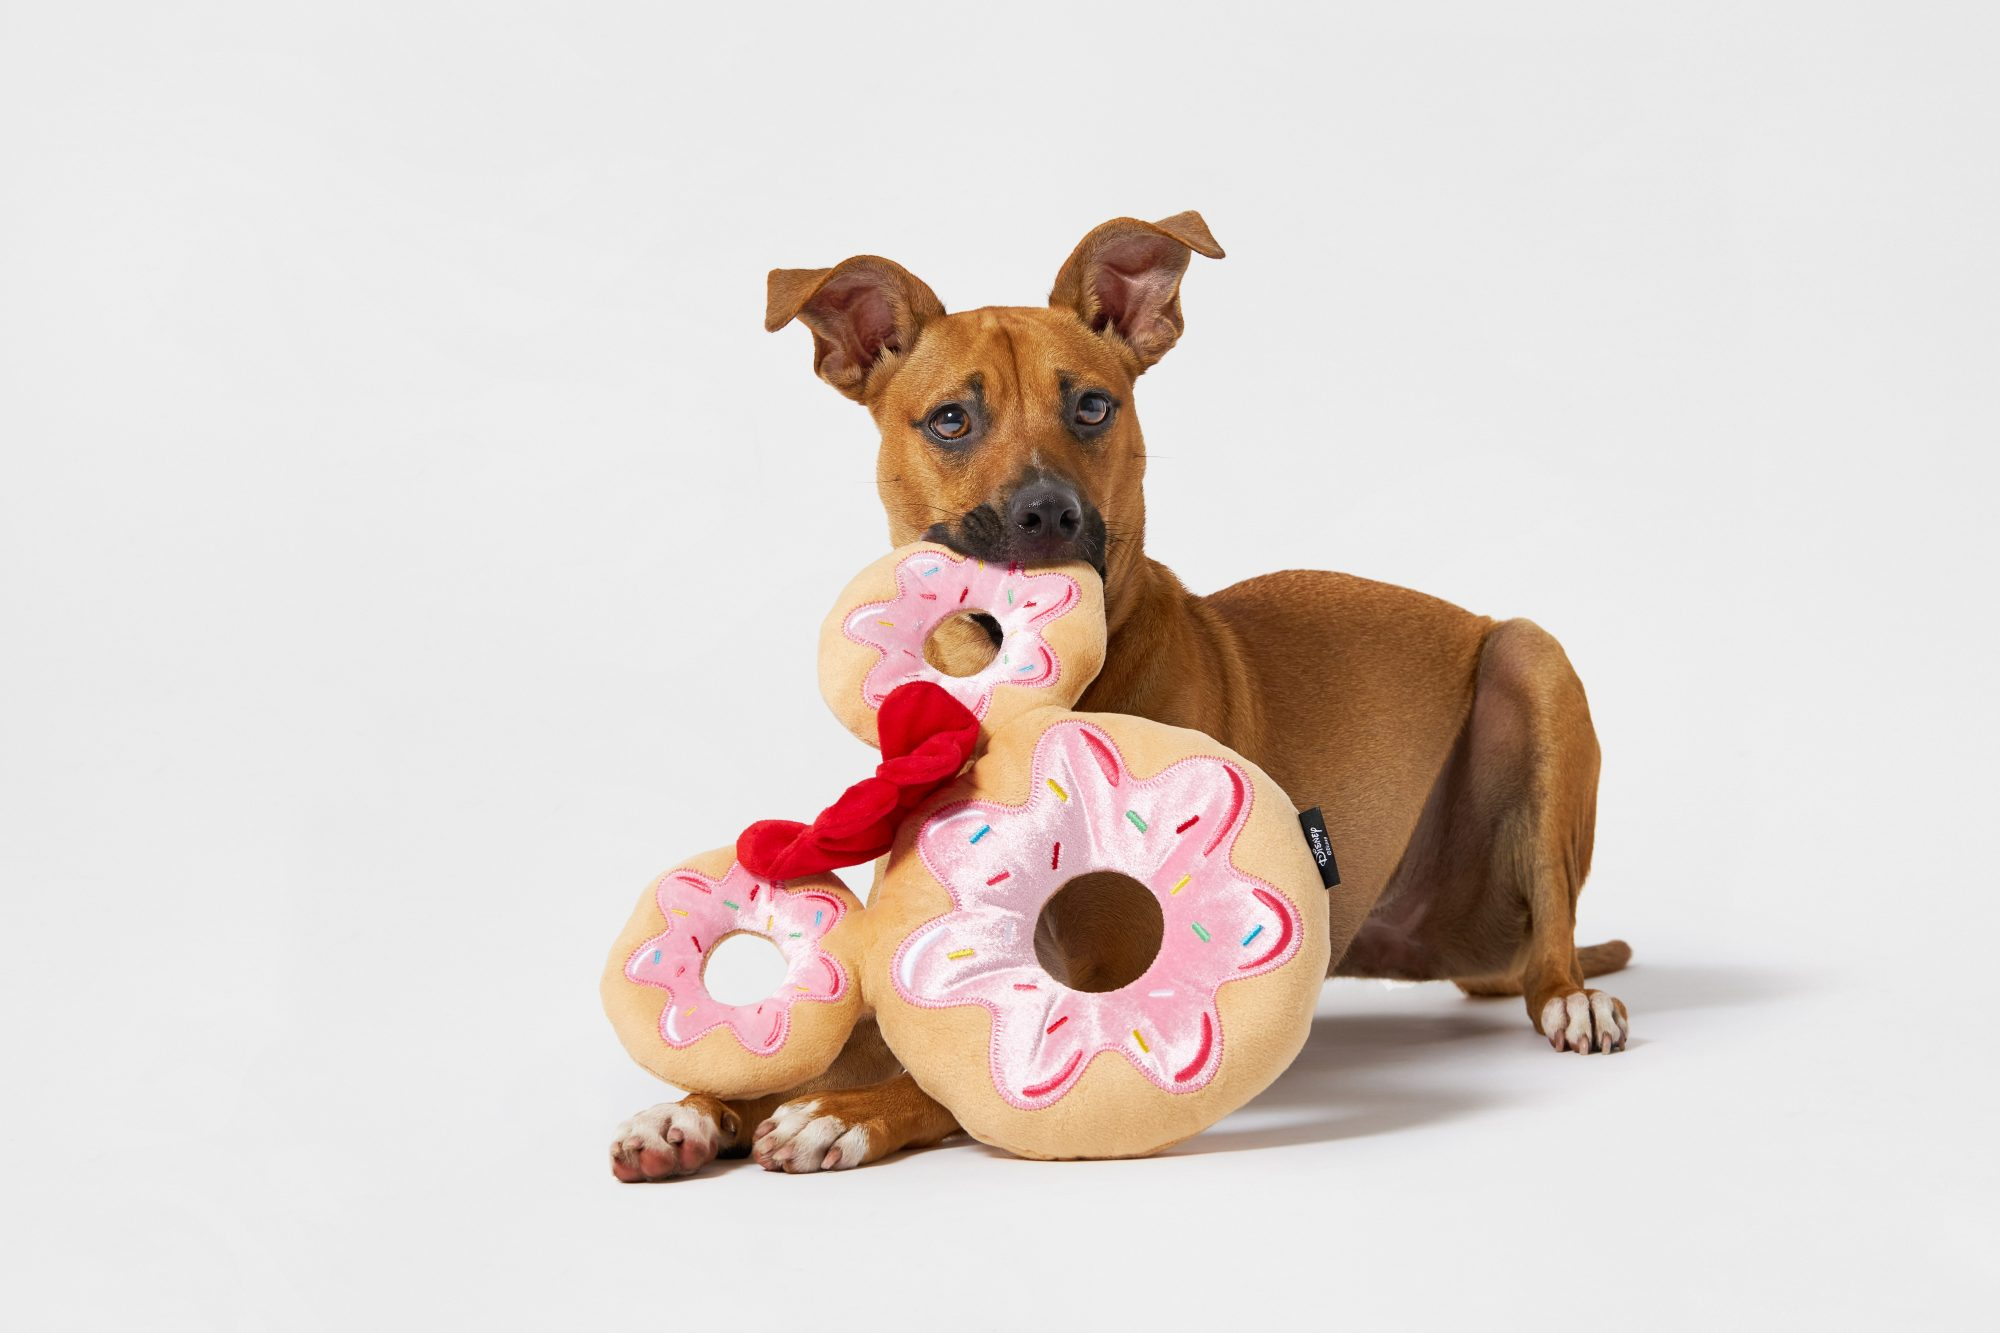 Disney Minnie Mouse Donut Plush Squeaky Dog Toy with dog